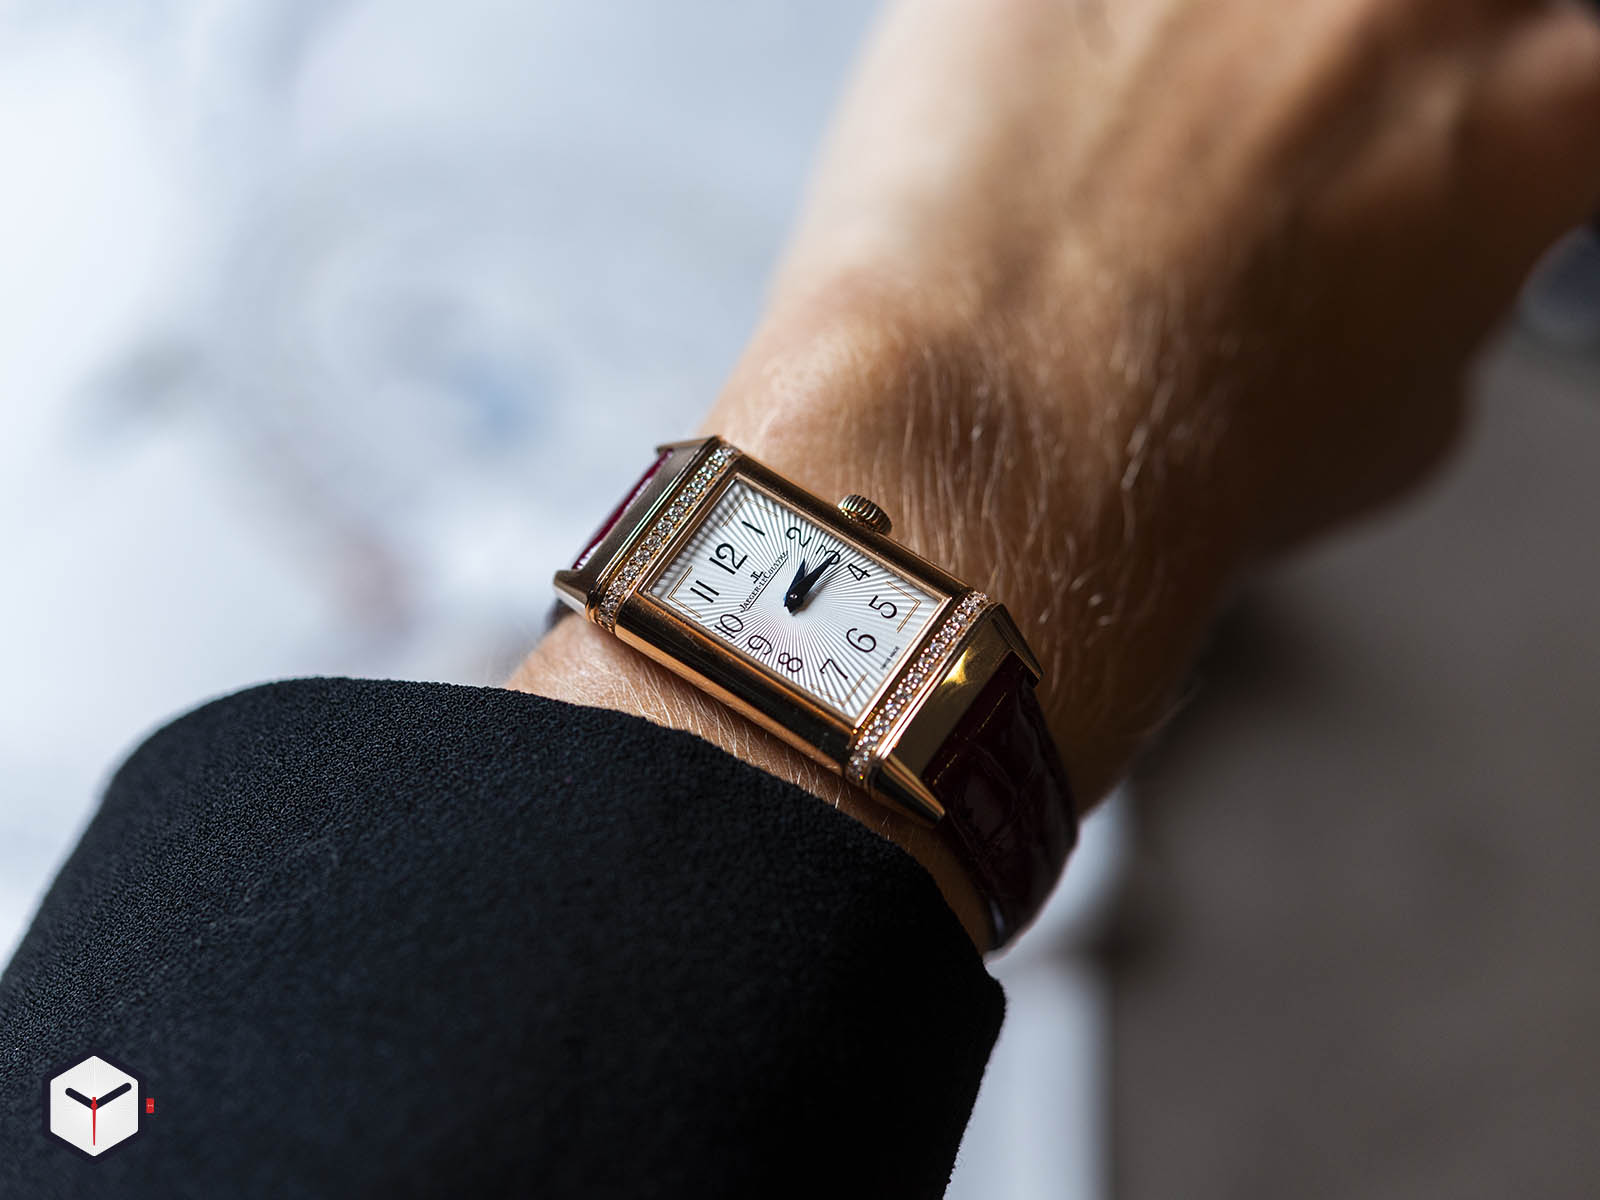 3342520-jaeger-lecoultre-reverso-one-duetto-sihh-2019-6.jpg